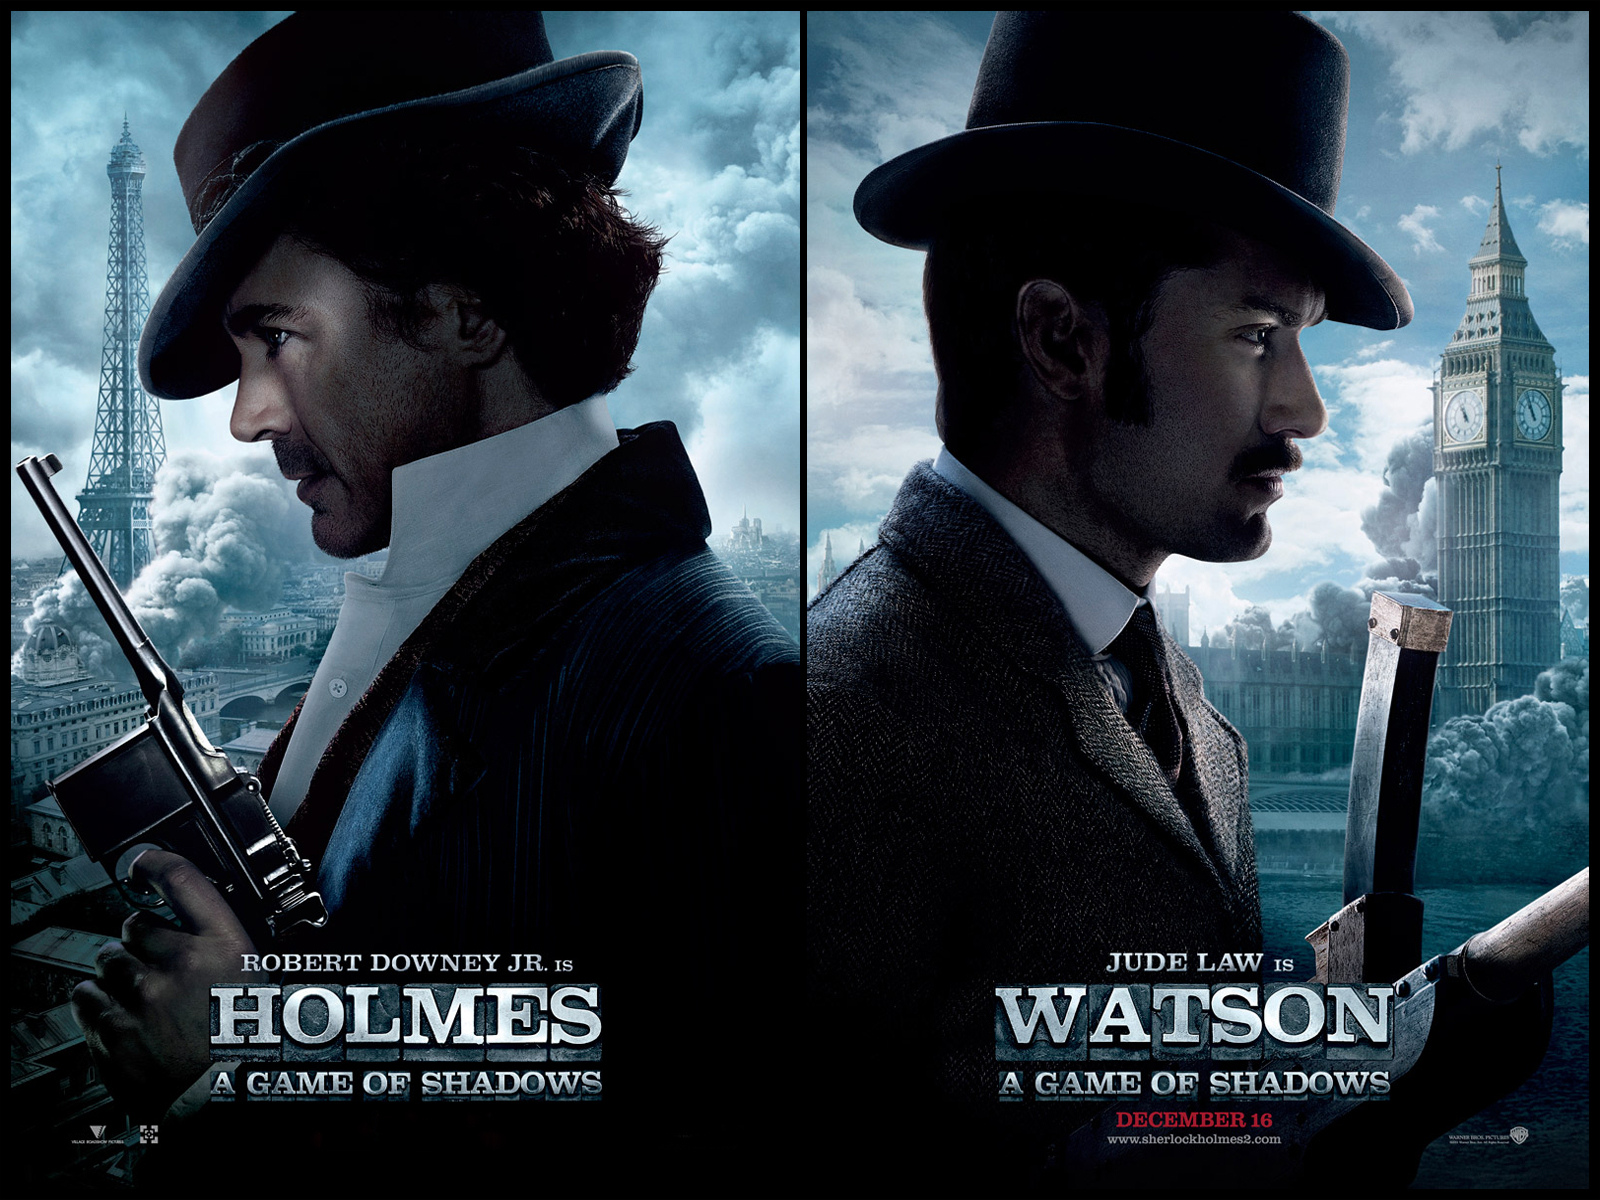 http://2.bp.blogspot.com/-E0dmp6Hg-mU/UCcbQ63MHSI/AAAAAAAABRk/5sfUyH3uh-Y/s1600/Sherlock%20Holmes%20A%20Game%20of%20Shadows%20Wallpapers%2019.jpg